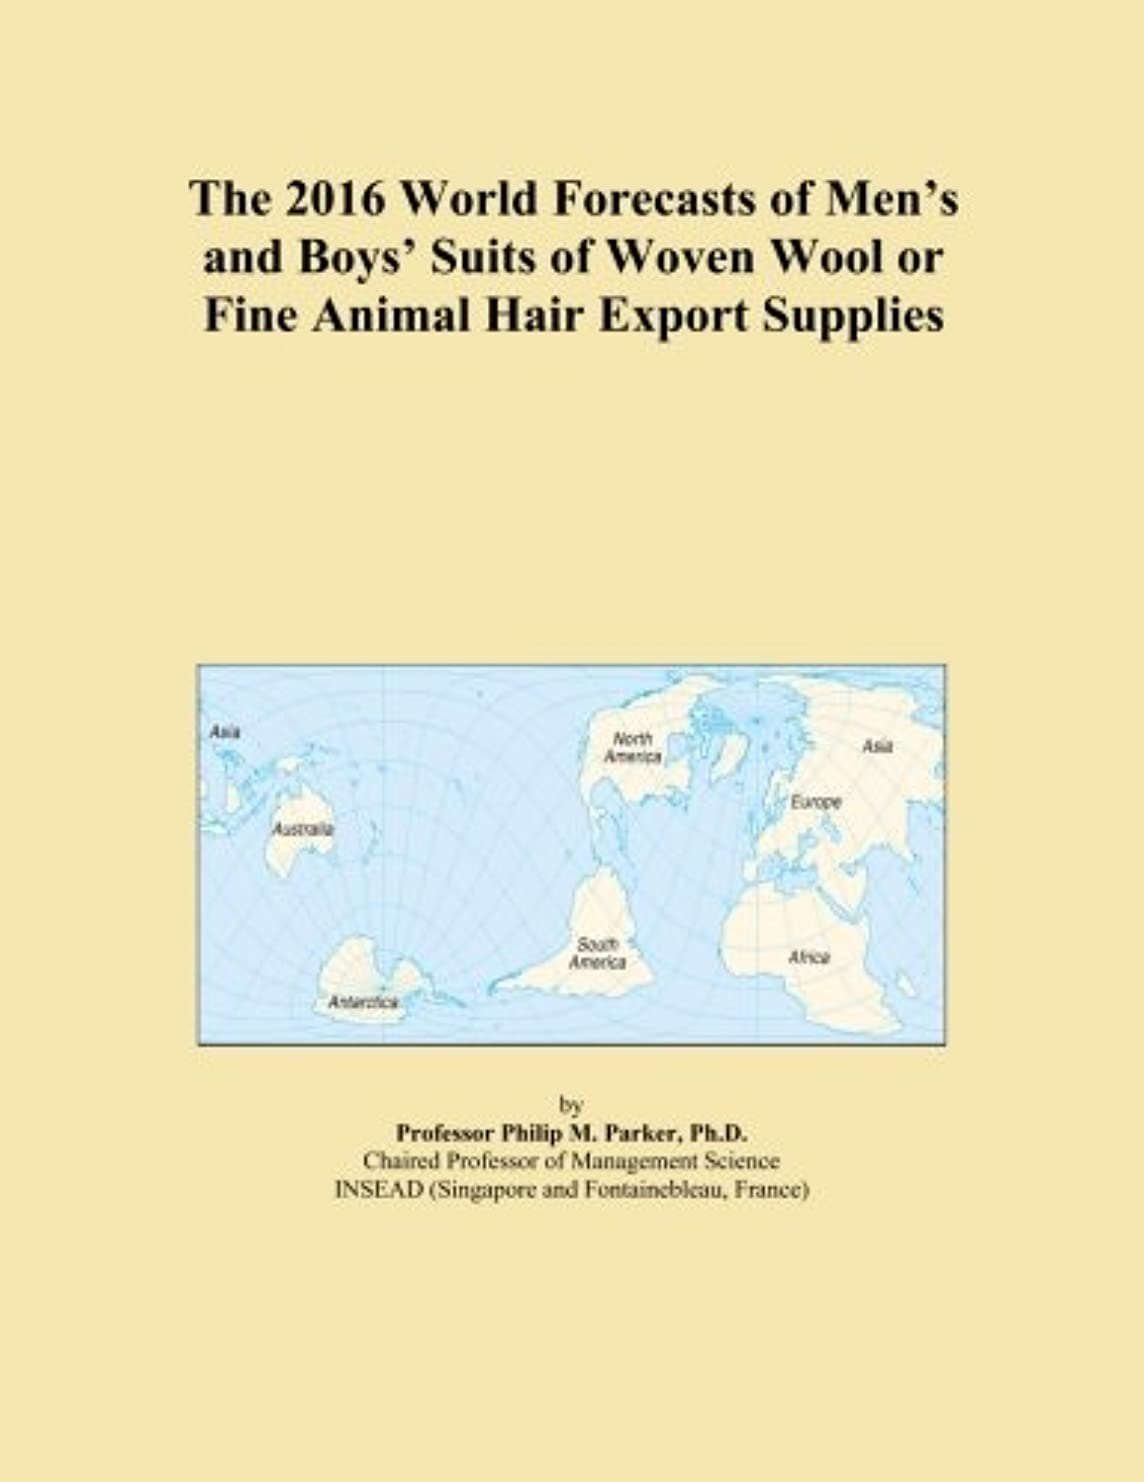 哲学印象的くしゃみThe 2016 World Forecasts of Men's and Boys' Suits of Woven Wool or Fine Animal Hair Export Supplies